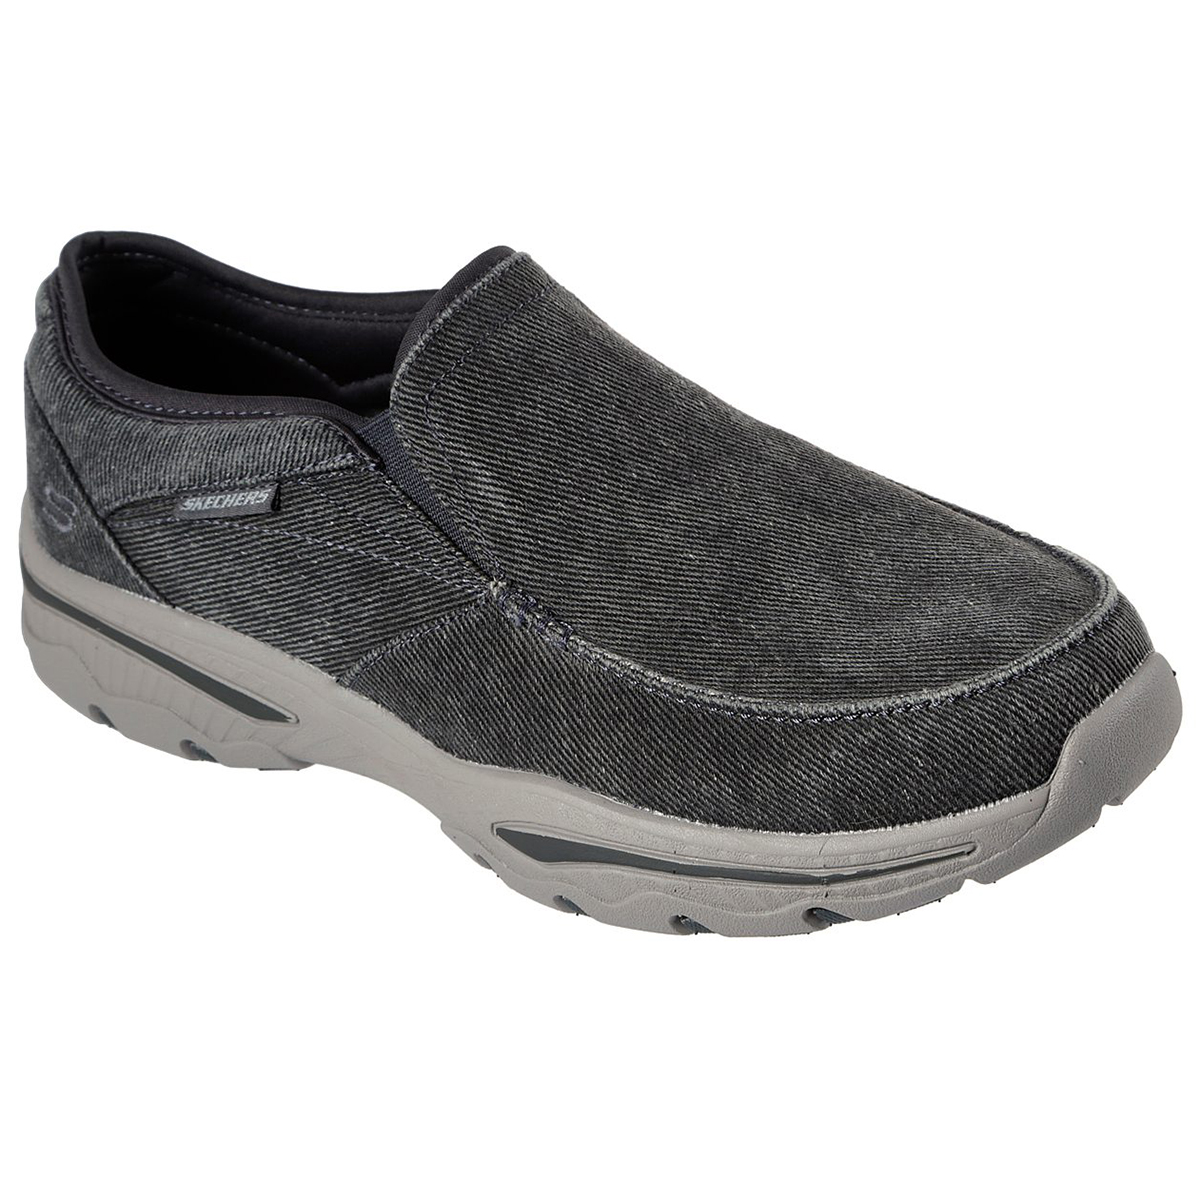 Skechers Men's Creston Moseco Slip-On Shoes - Black, 10.5